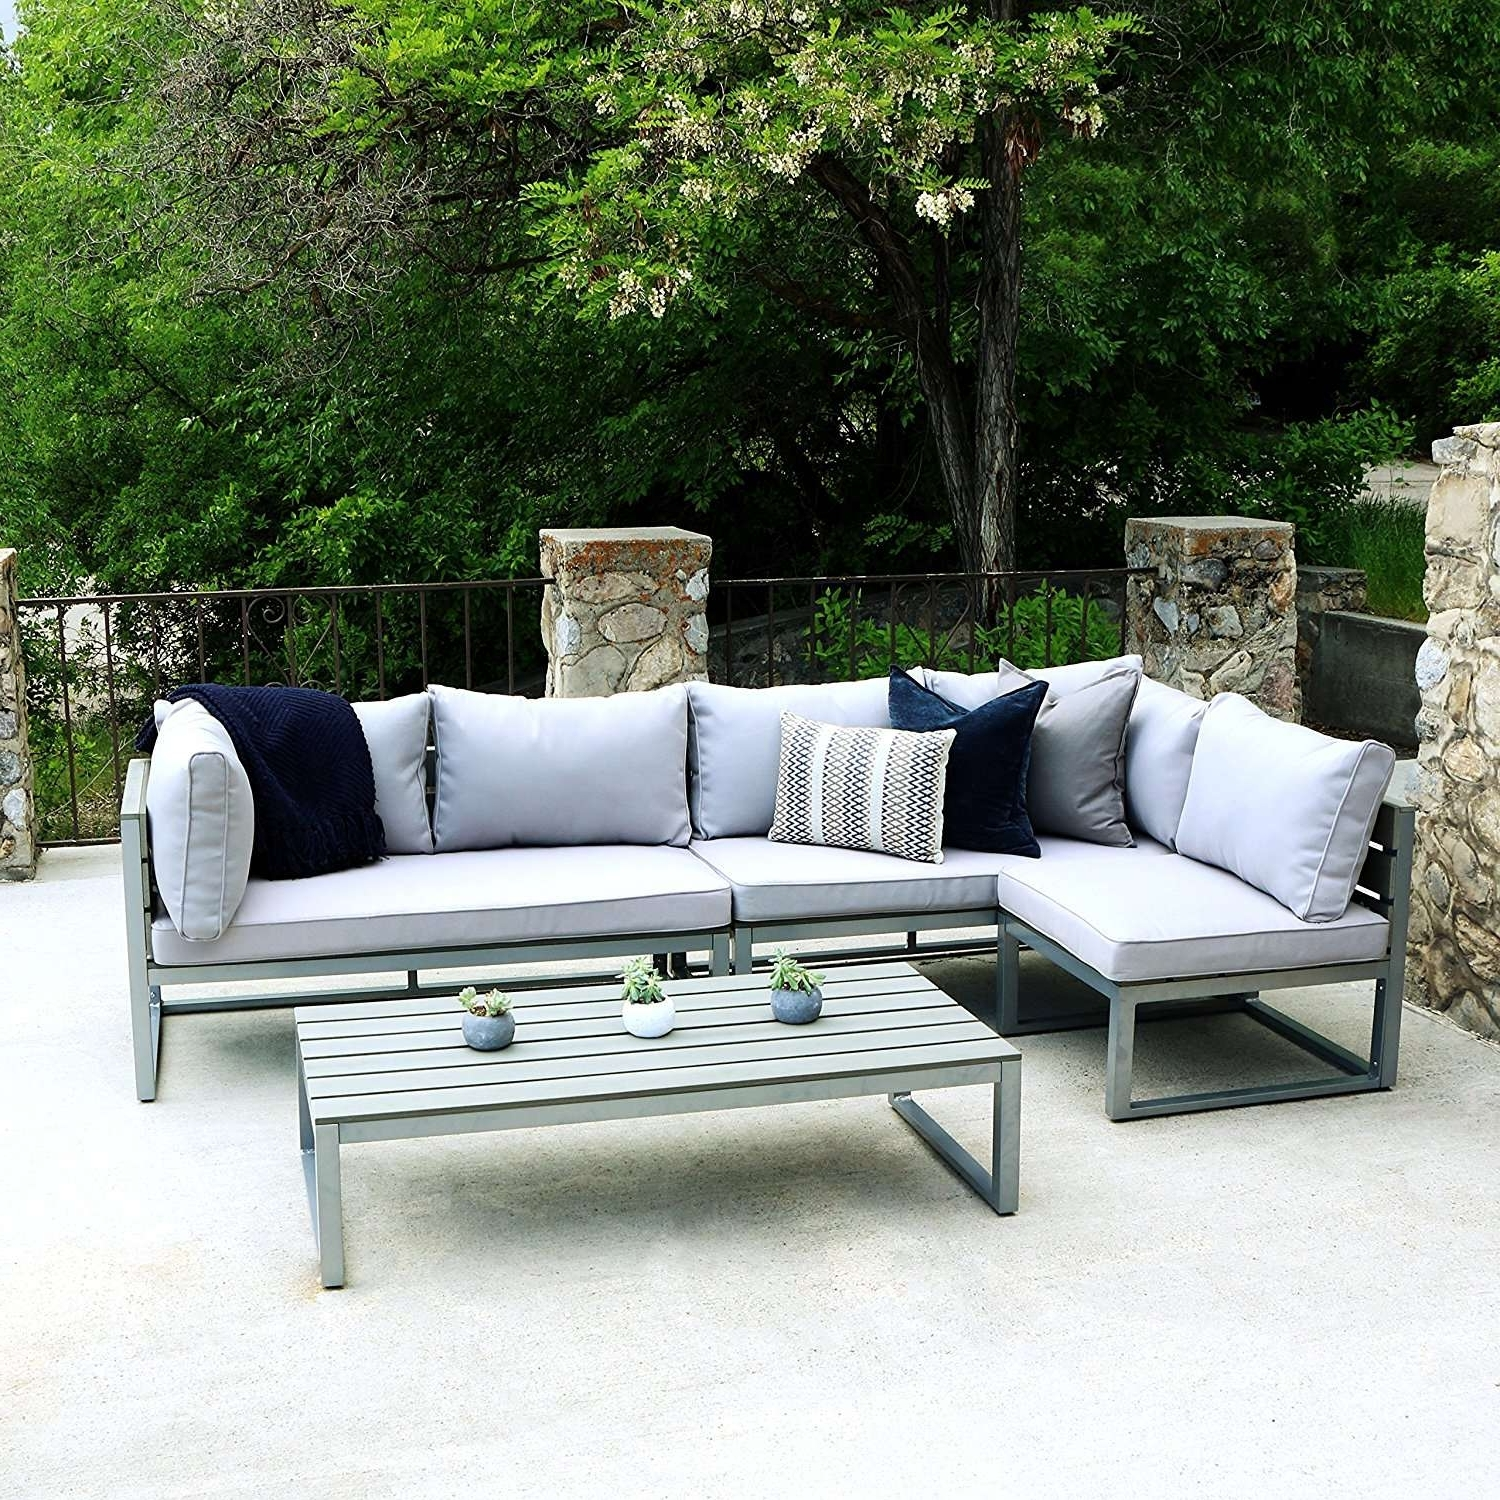 Round Patio Conversation Sets Throughout Favorite Conversation Sets Outdoor Sectional Seating Round Patio Concept Of (View 10 of 15)